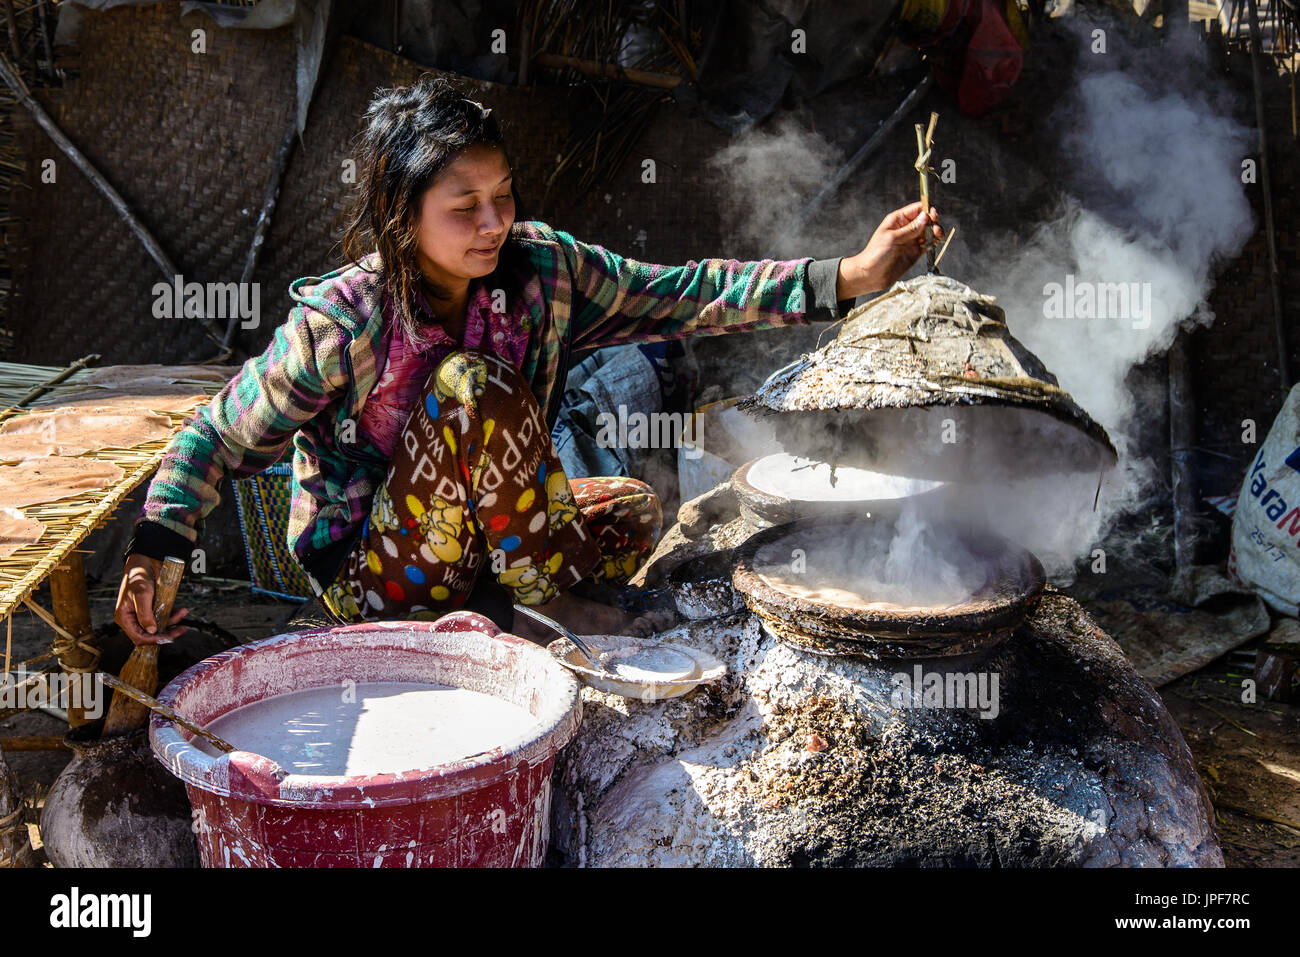 INLE LAKE, MYANMAR - FEBRUARY 15, 2014: young burmese lady cooking rice bred Stock Photo